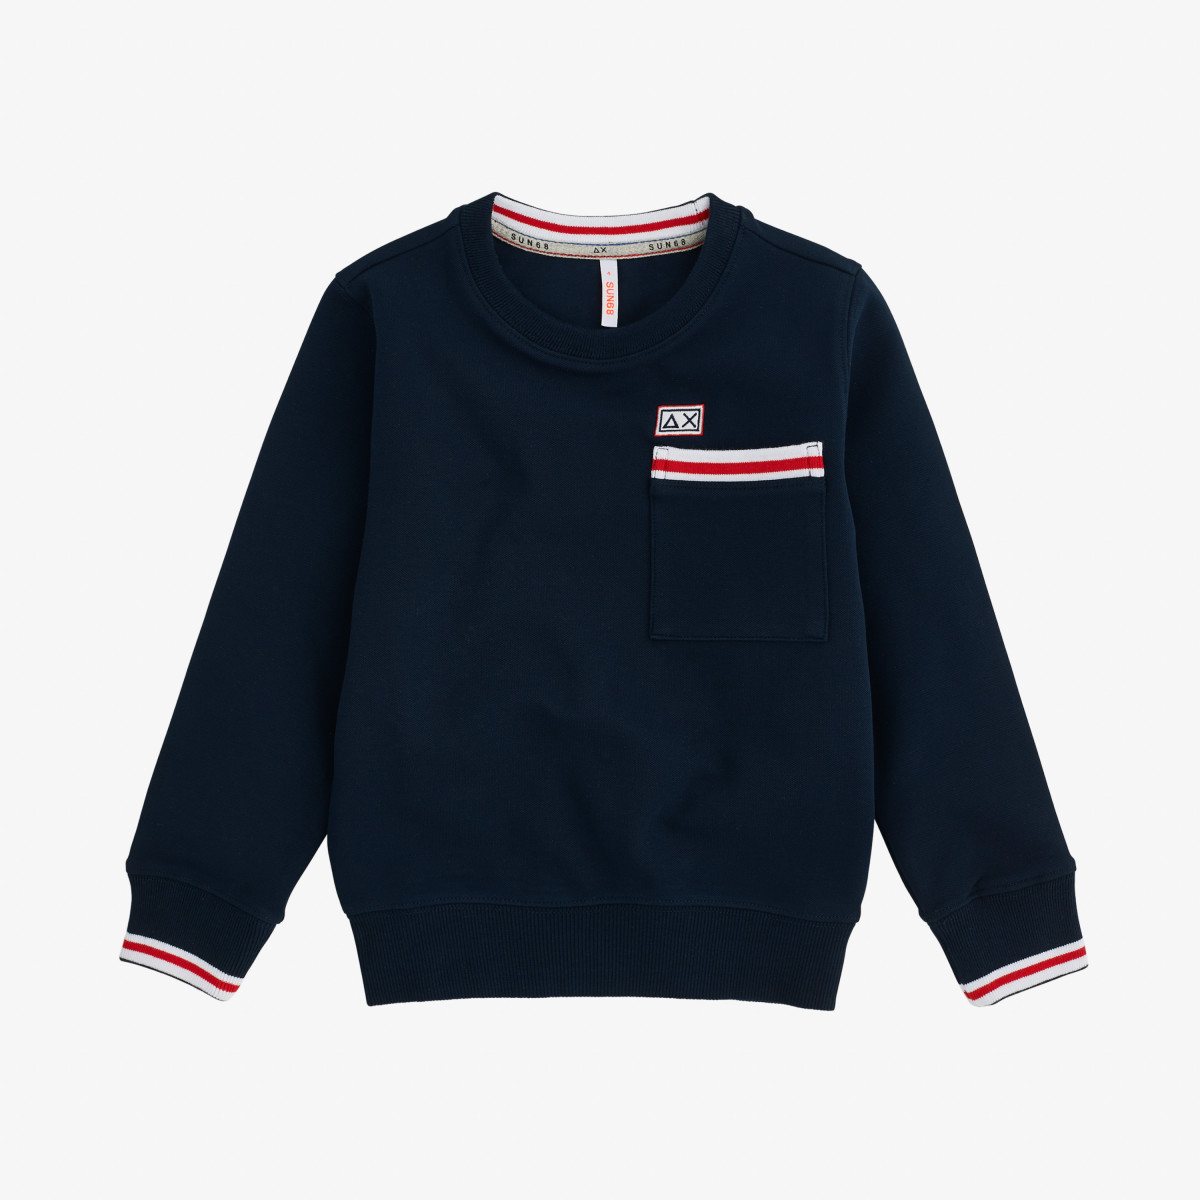 BOY'S ROUND HERITAGE COTTON FL NAVY BLUE